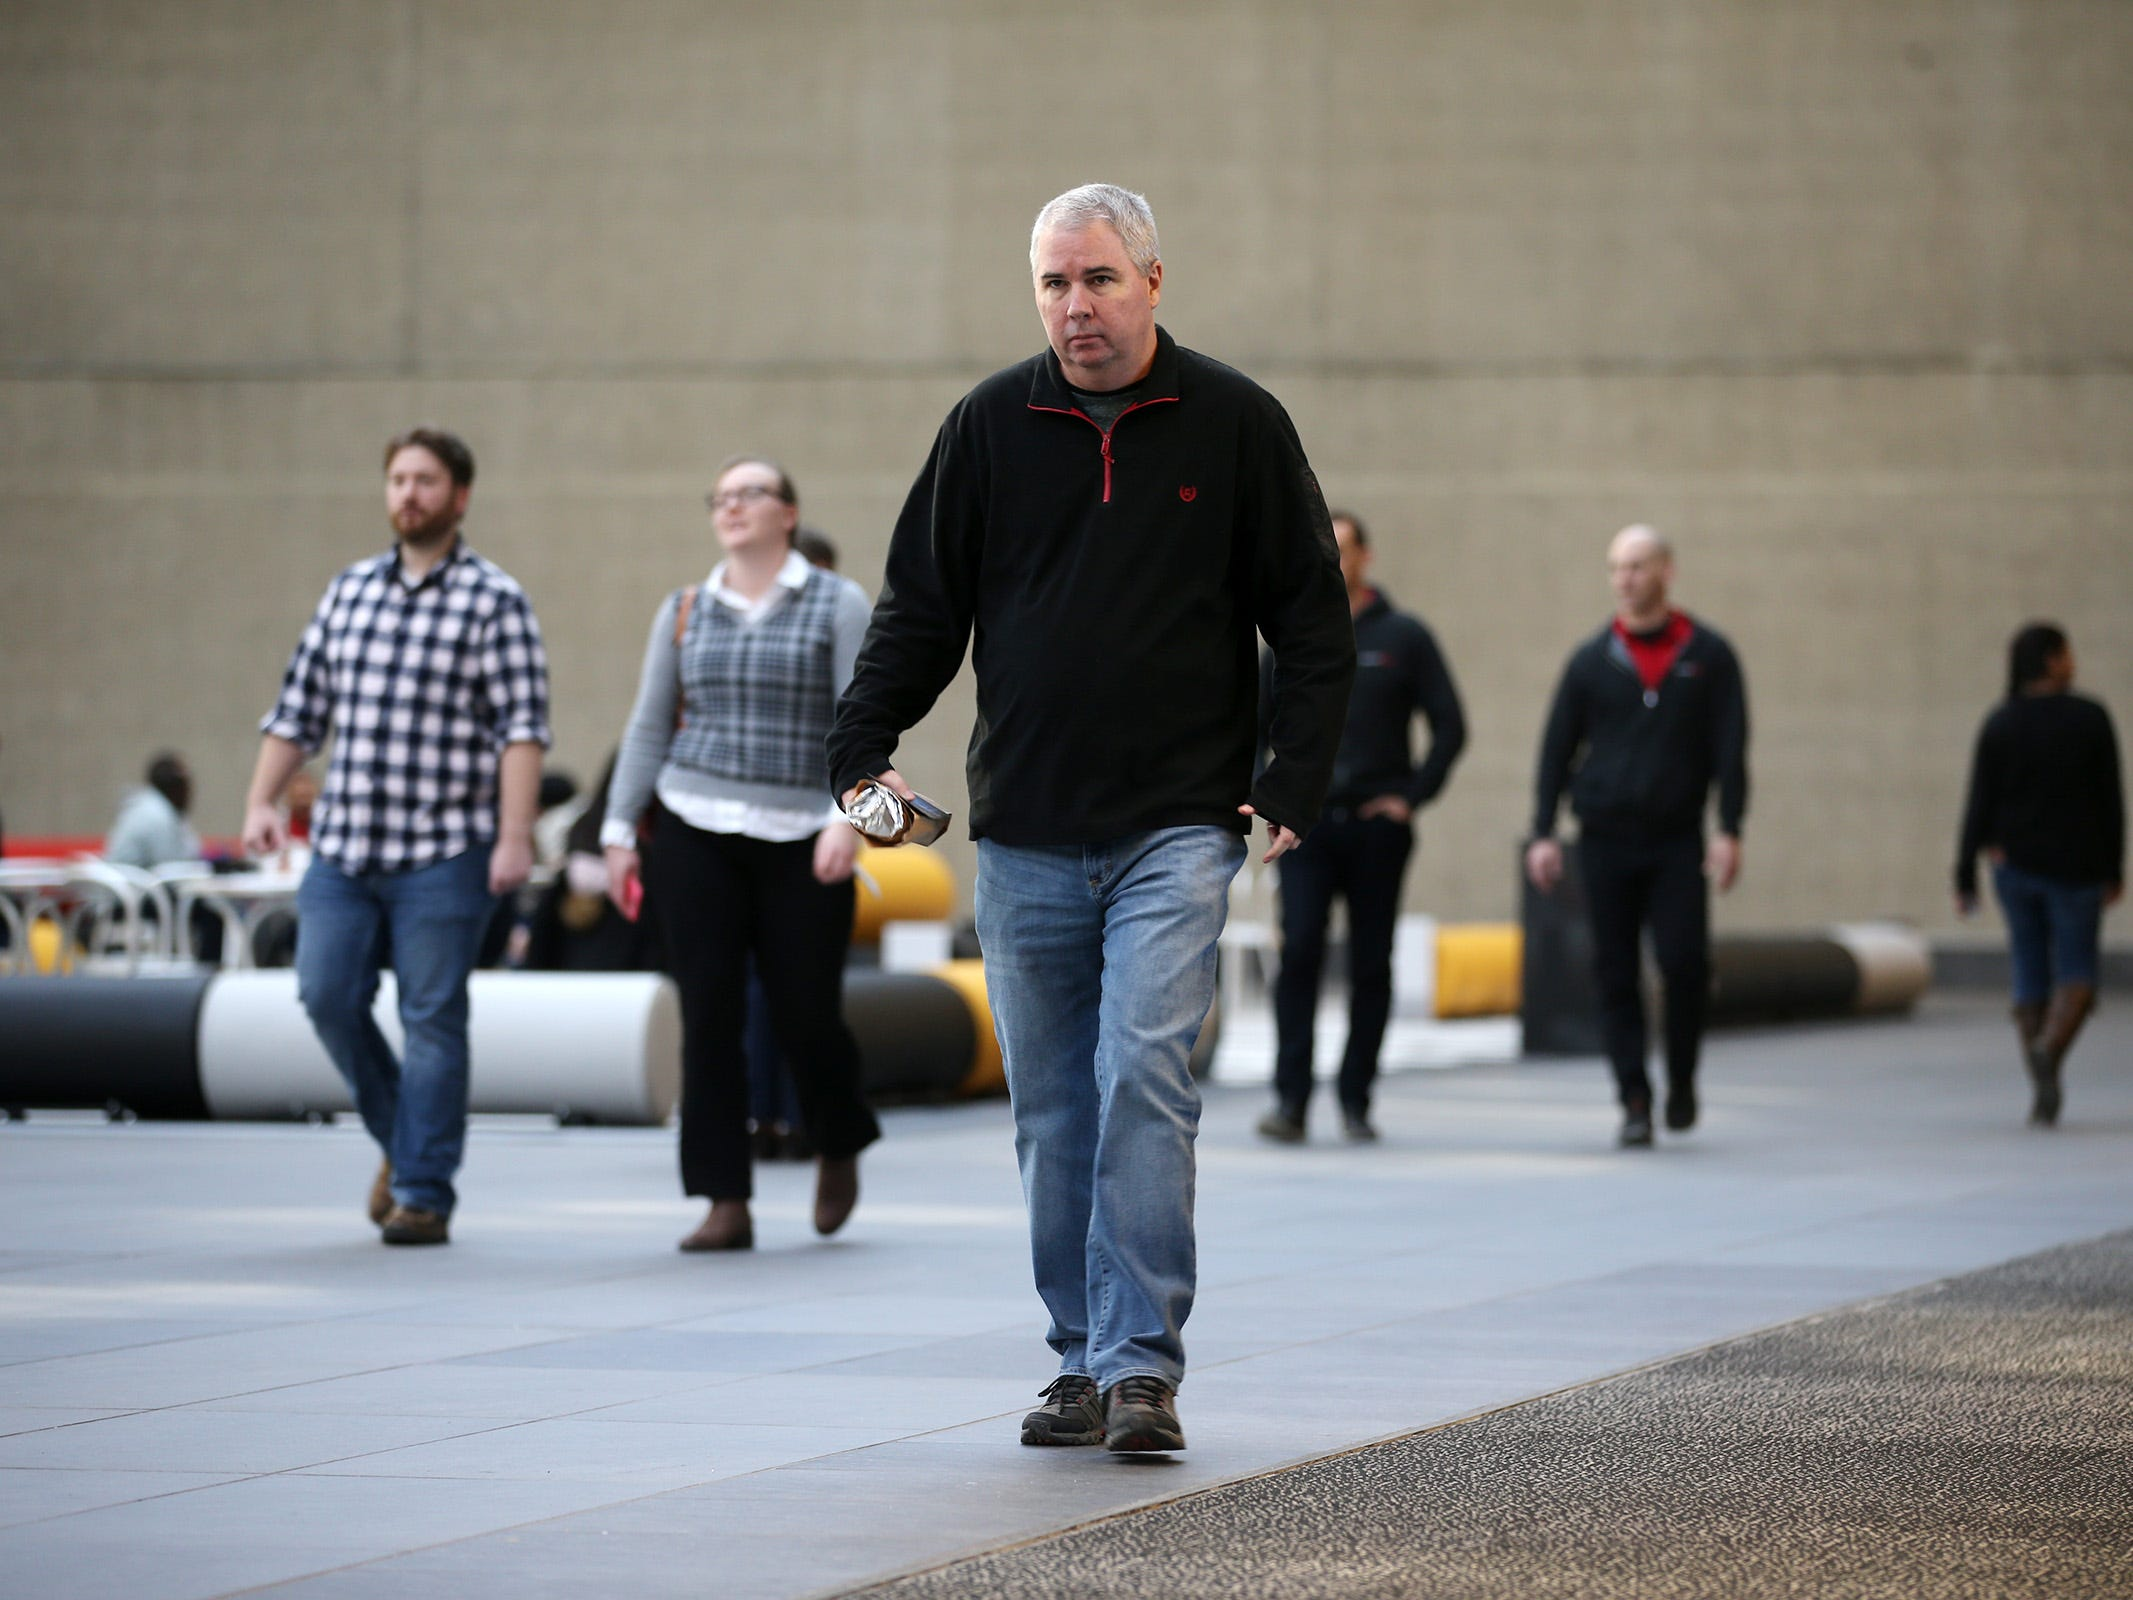 Vistors and employees walk around the building at Bell Works in Holmdel, NJ Thursday January 31, 2019. Bell Works versus Fort Monmouth. Who's winning? The Shore's two biggest redevelopment projects got underway at about the same time, but Bell Works has pulled far ahead in the race.